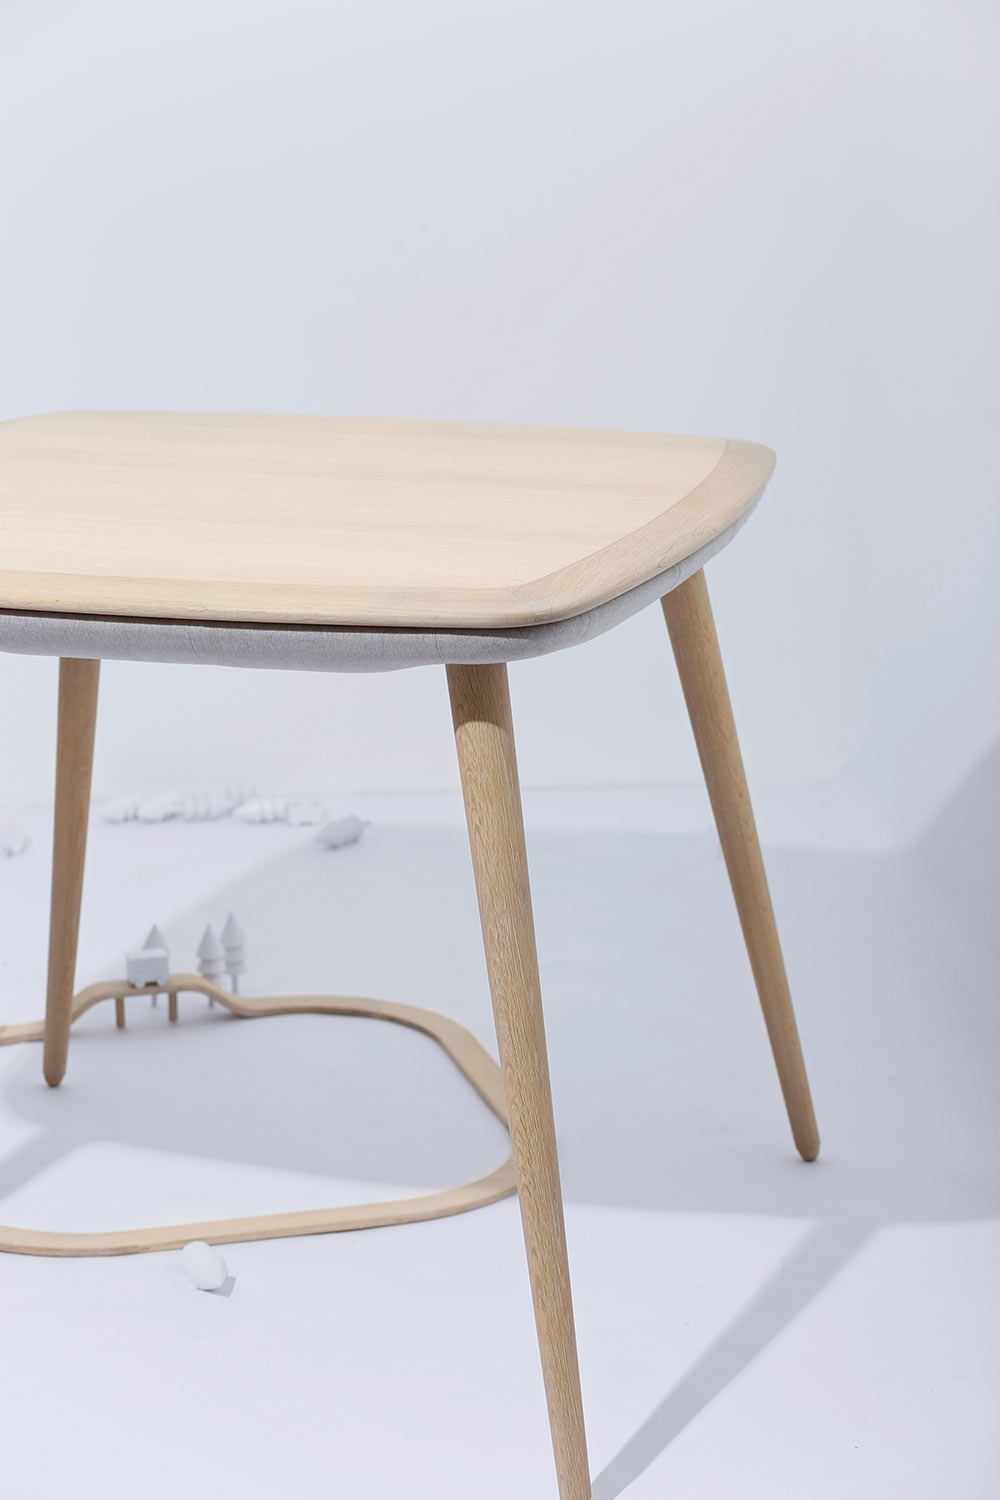 Top 6 mid century modern furniture pieces that will for Best modern furniture websites